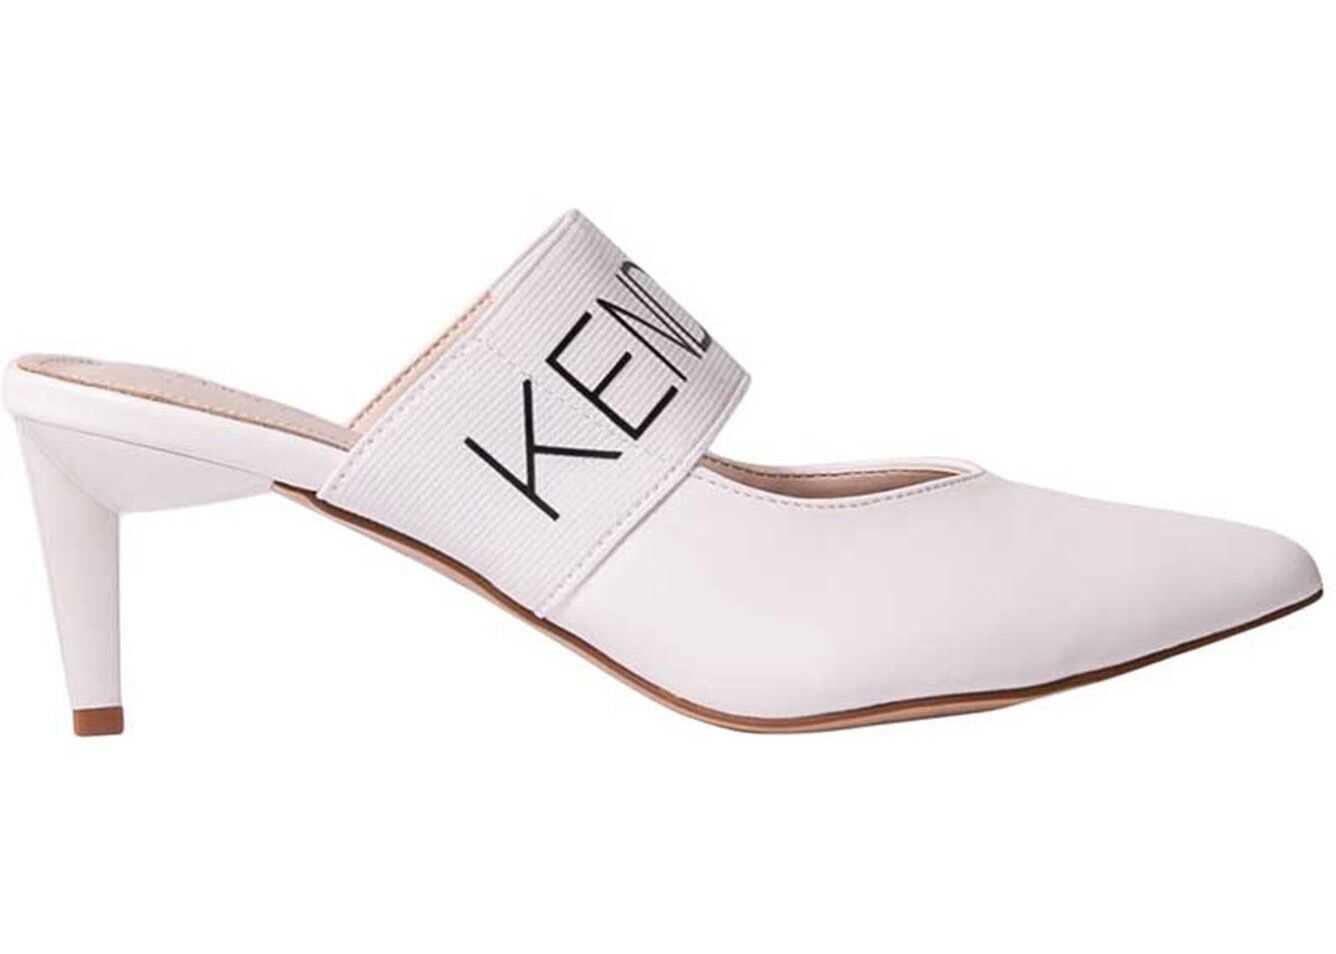 KENDALL + KYLIE Lacey Mules In White LACEY WHT WHT White imagine b-mall.ro